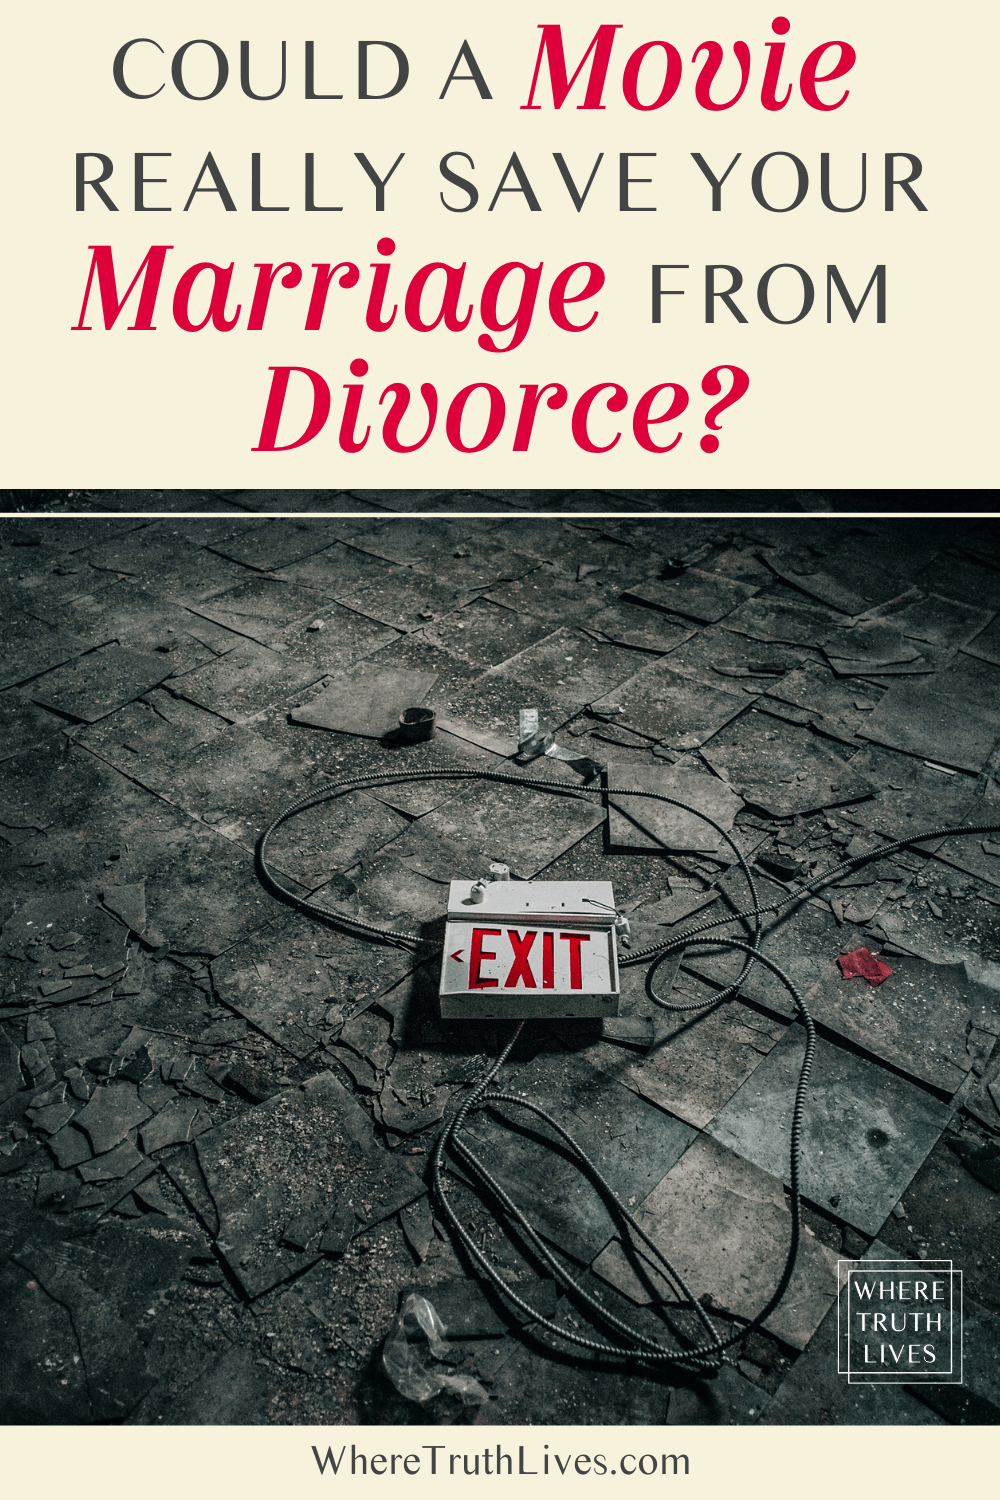 Is your marriage stale or struggling? Discover how a movie could be the unlikely tool that gets your relationship back on track and saves your marriage from divorce… | Could a Movie Really… Save Your Marriage From Divorce? | Where Truth Lives .com | Fireproof, Christian movies, marriage, divorce, Christian, movie, Kirk Cameron